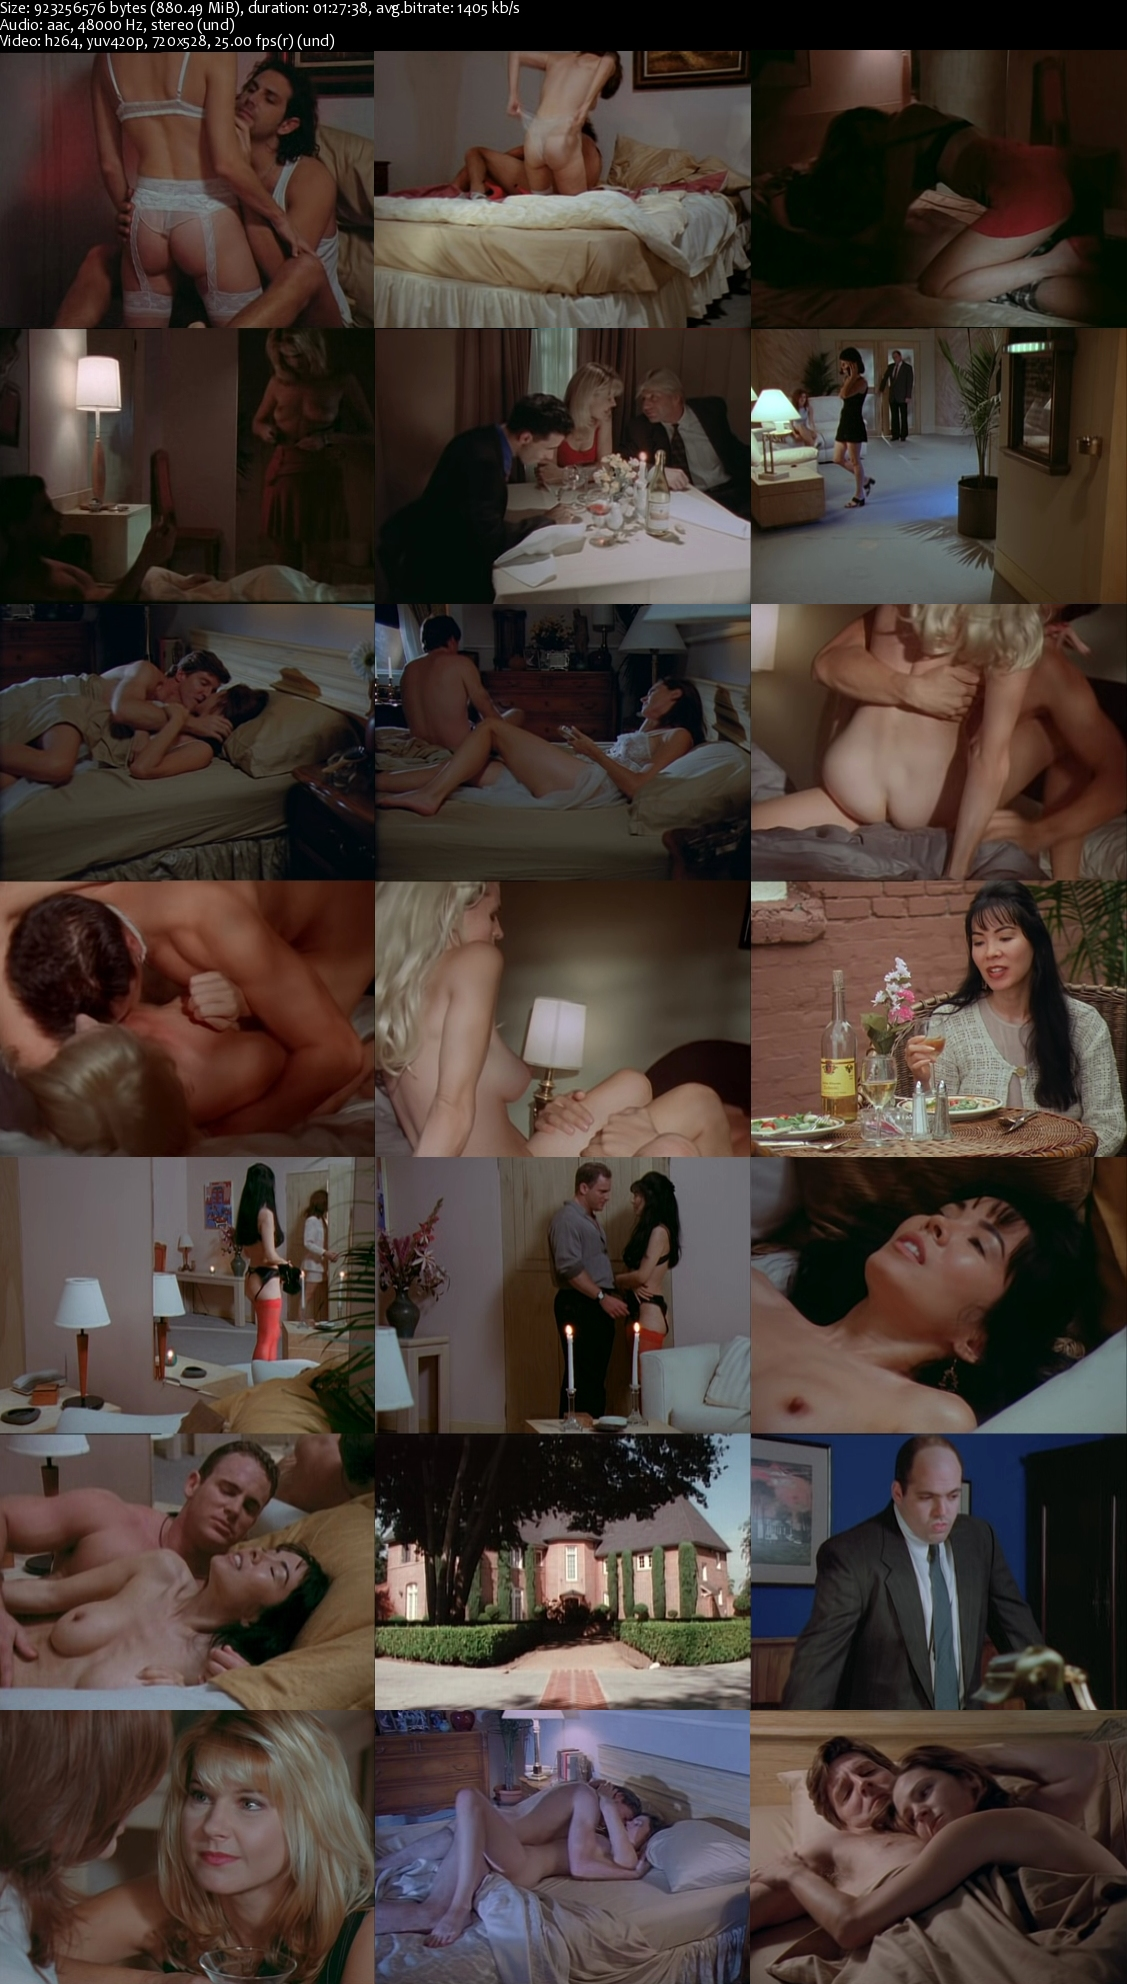 confessions_of_a_call_girl_1998